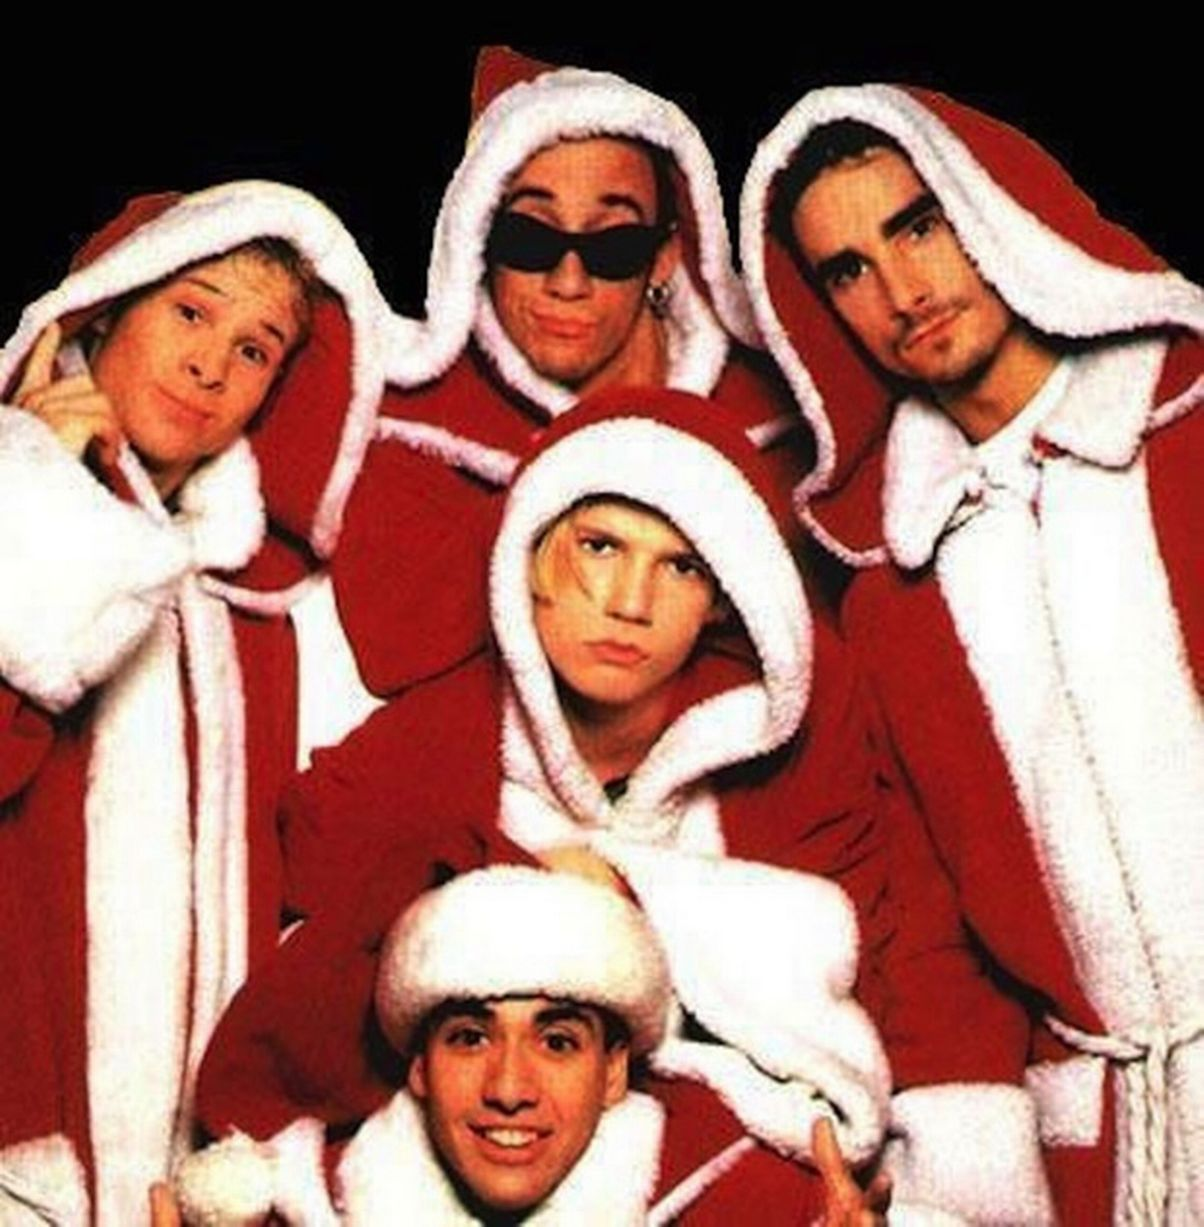 Backstreet Boys Christmas.Pin By Ally On Backstreet Boys Backstreet Boys Backstreet